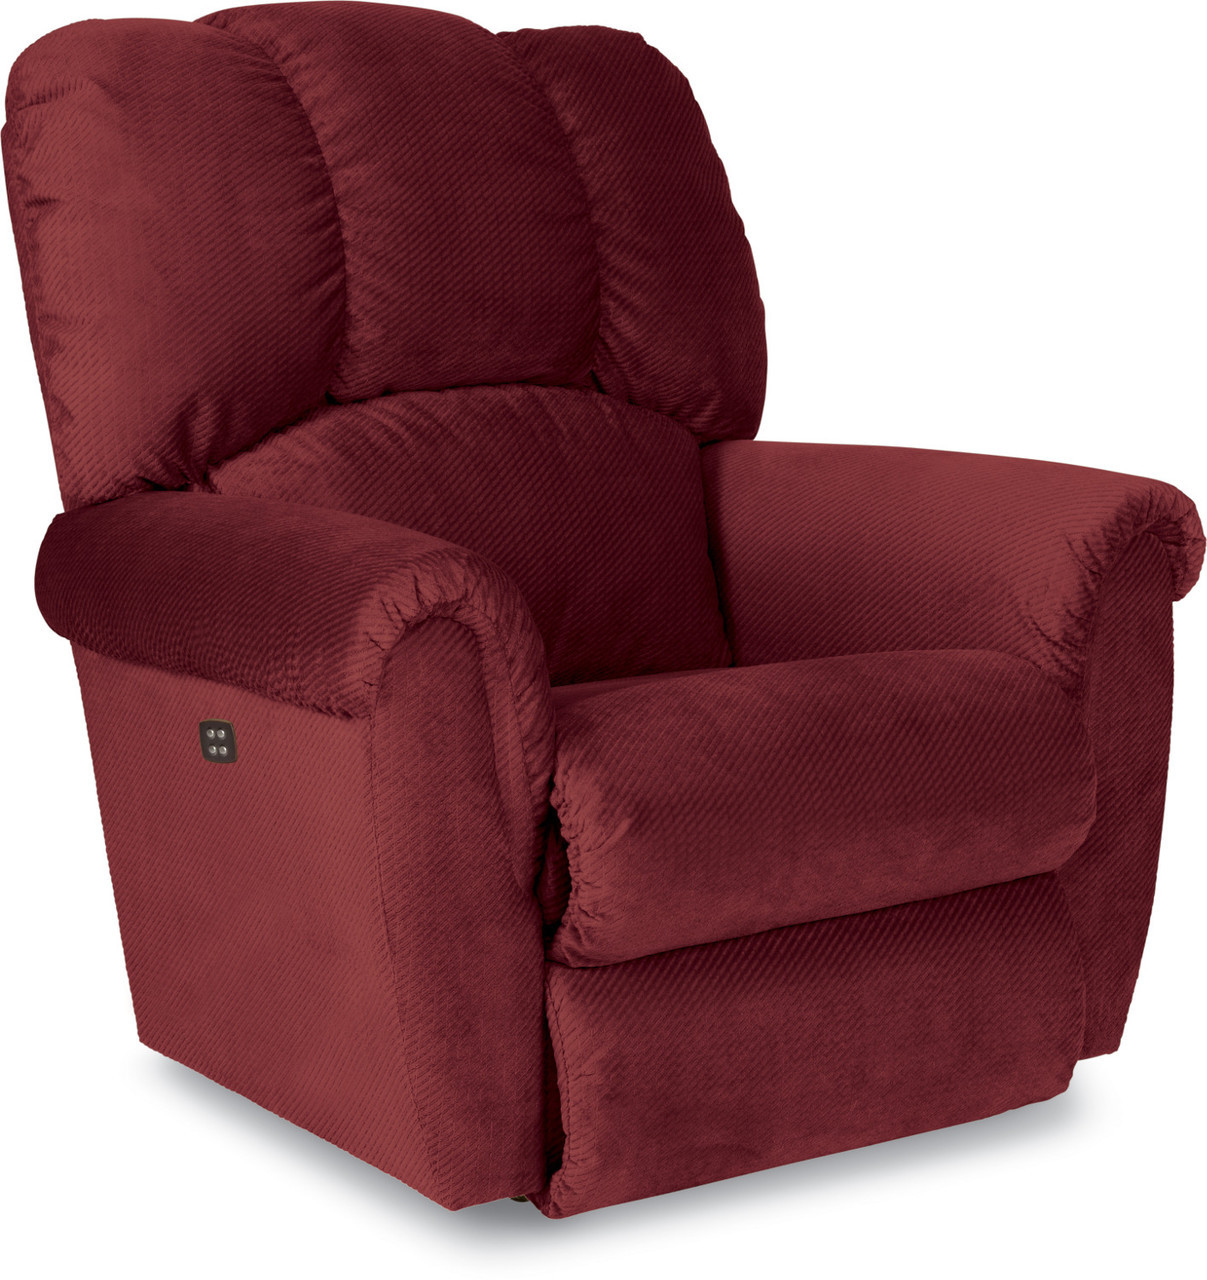 The Conner Reclina Way Recliner Sold At Rose Brothers Furniture Serving Wilmington And